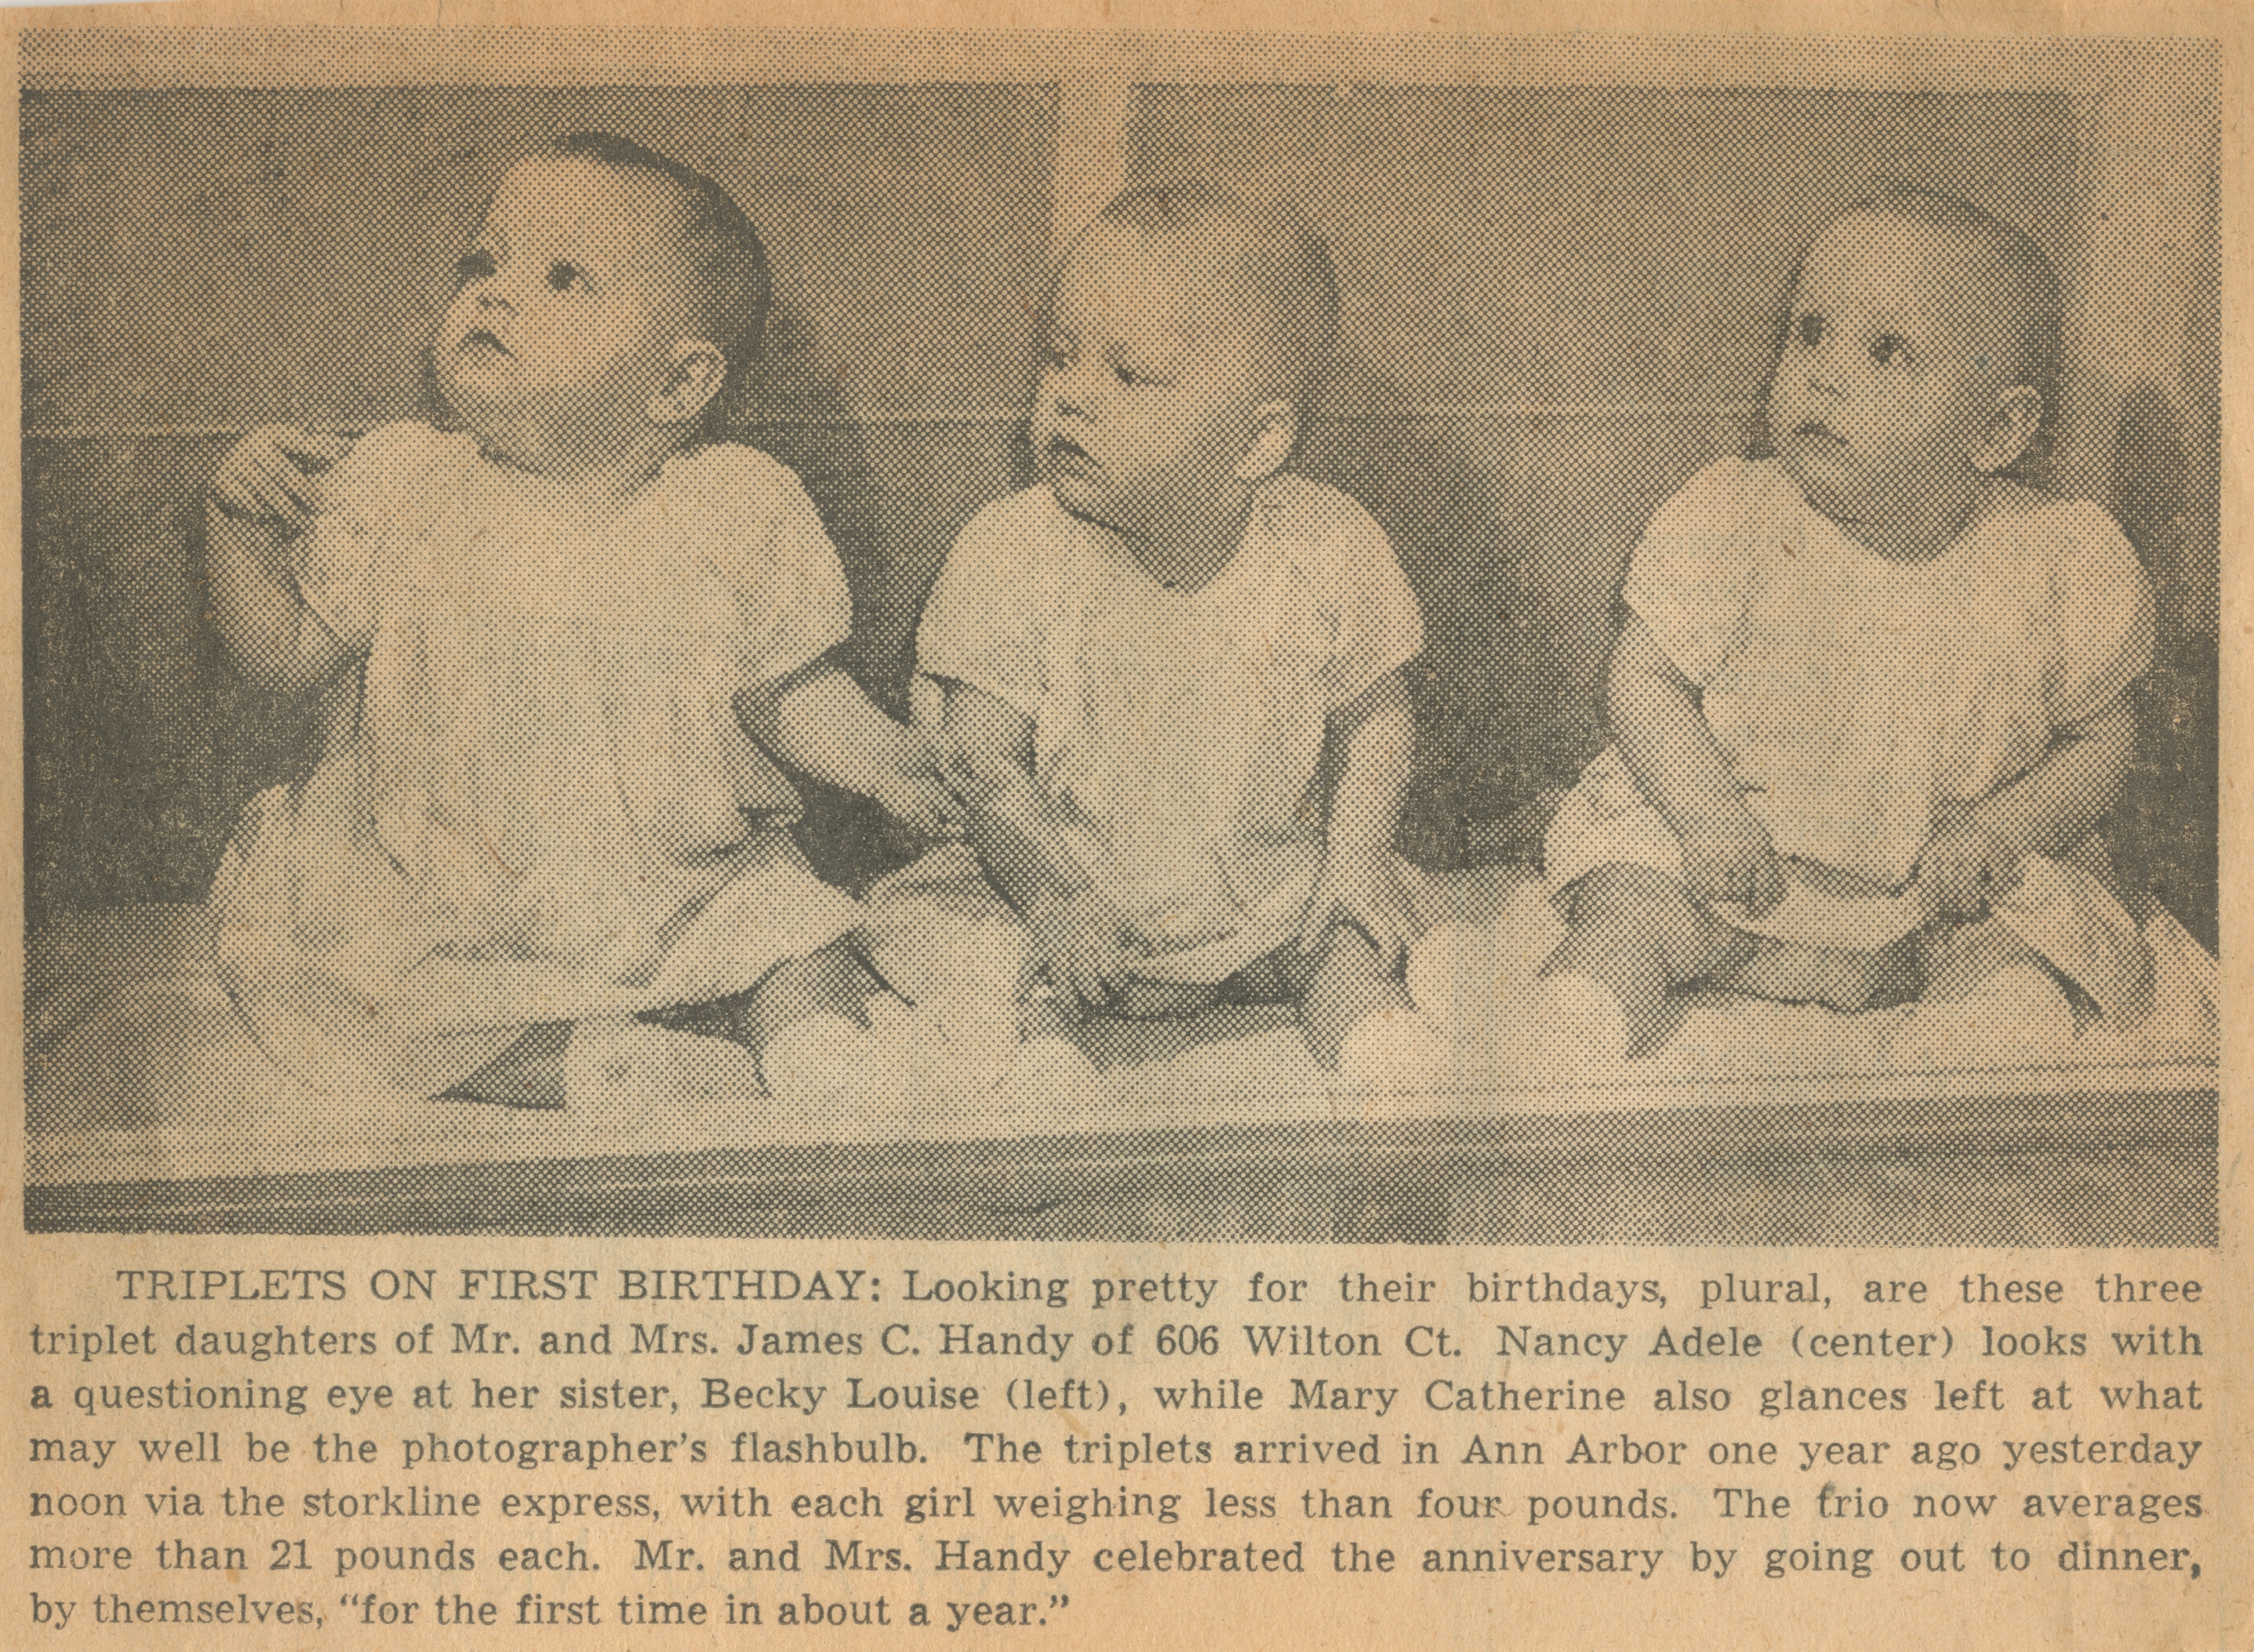 Triplets On First Birthday image